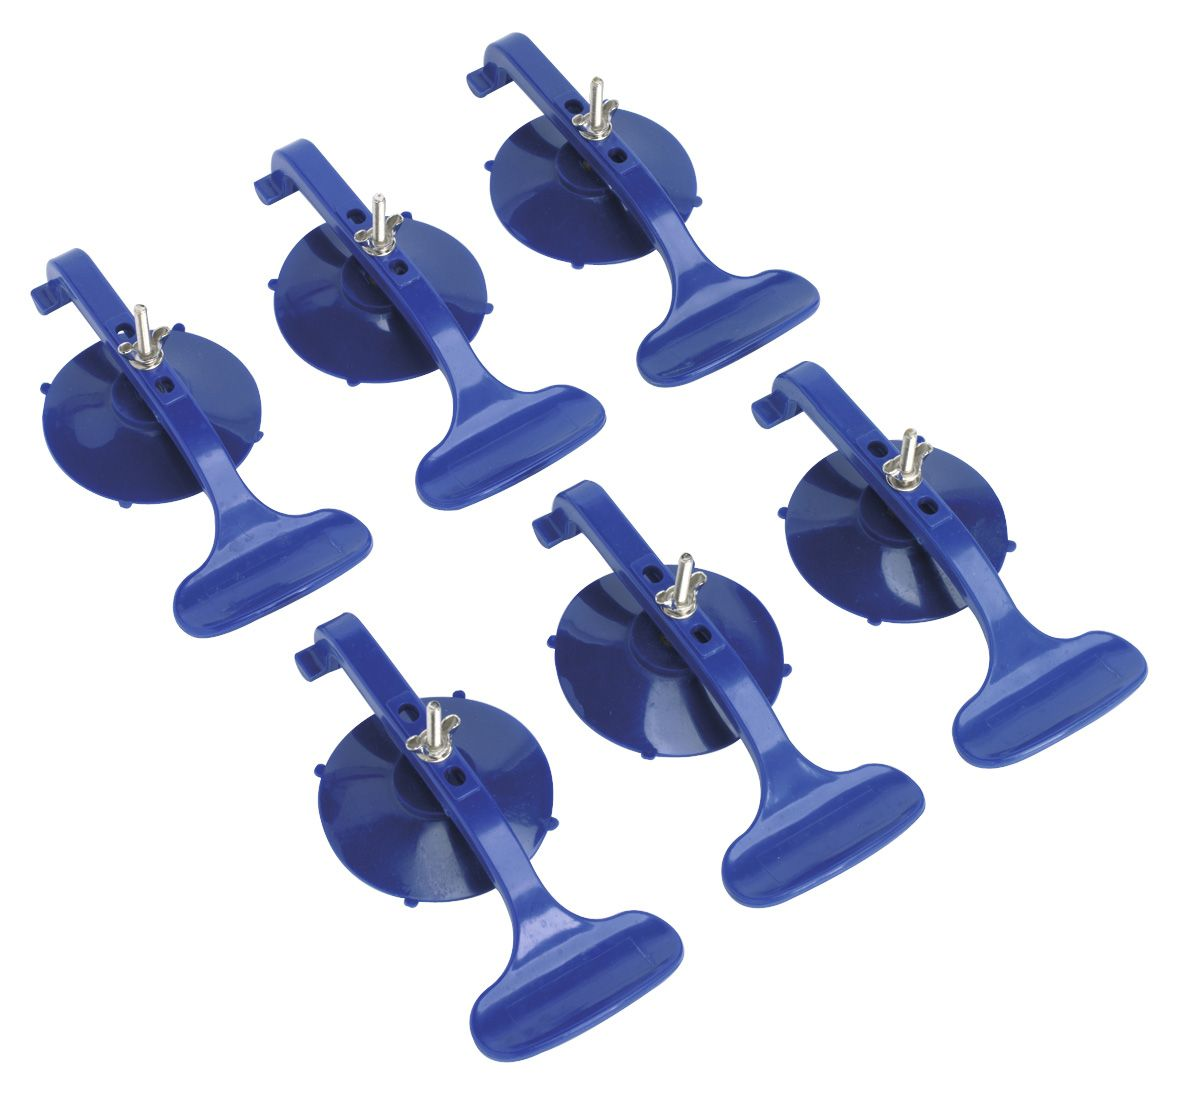 Sealey Suction Clamp Set 6pc